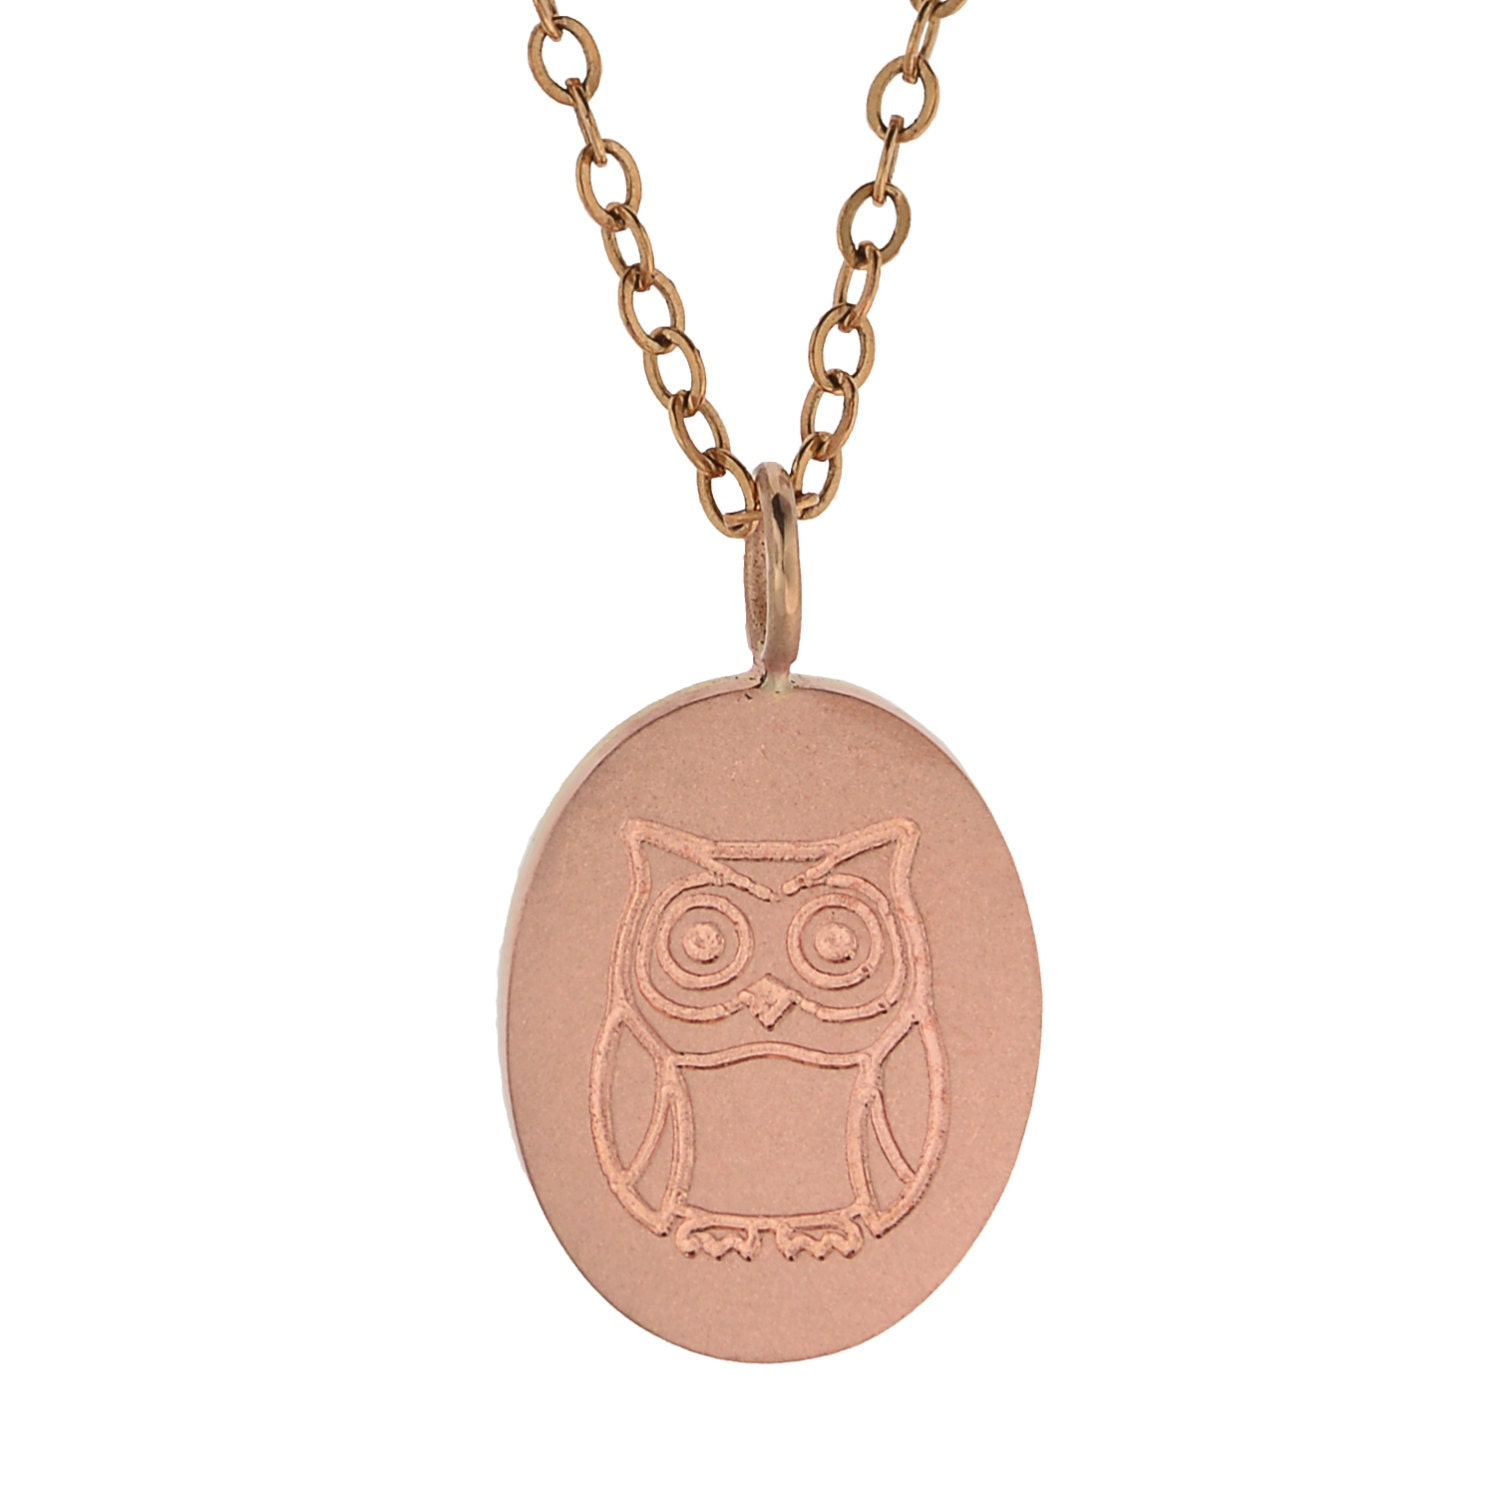 Rose gold jewelry custom logo design gold chain necklace for Rose gold personalized jewelry